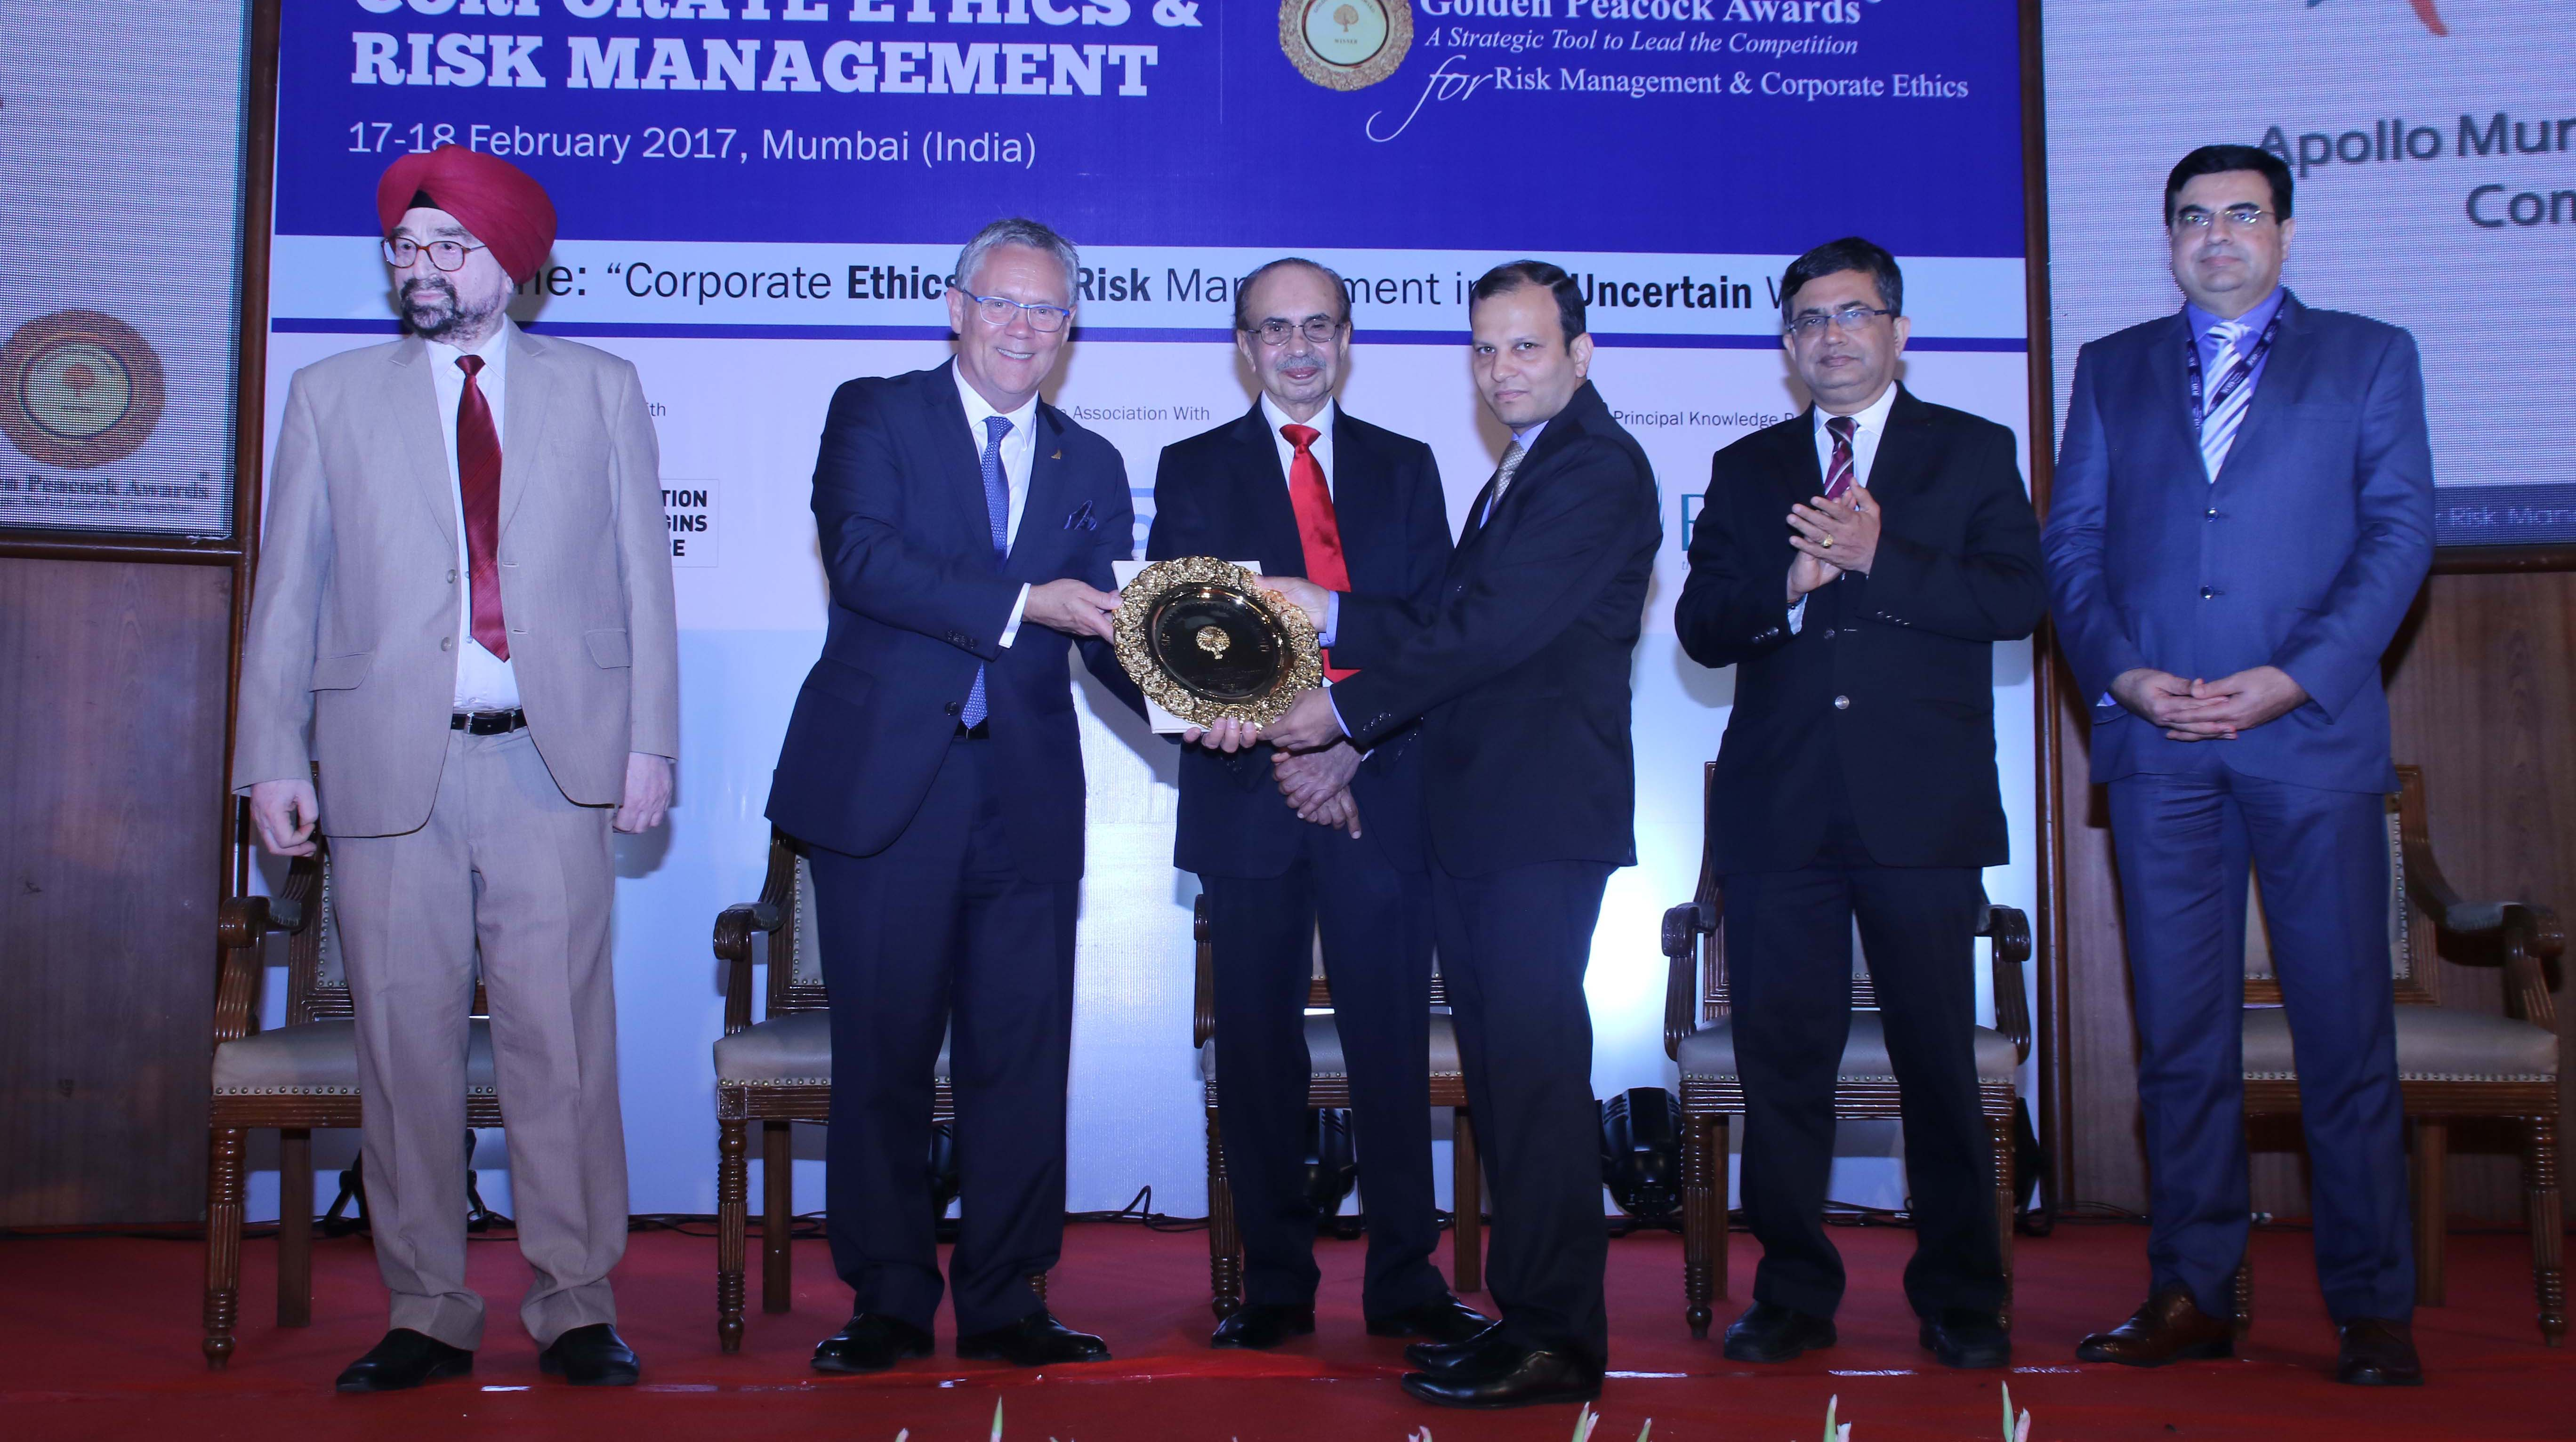 ​Apollo Munich Health Insurance wins Golden Peacock Award for Risk Management 2017